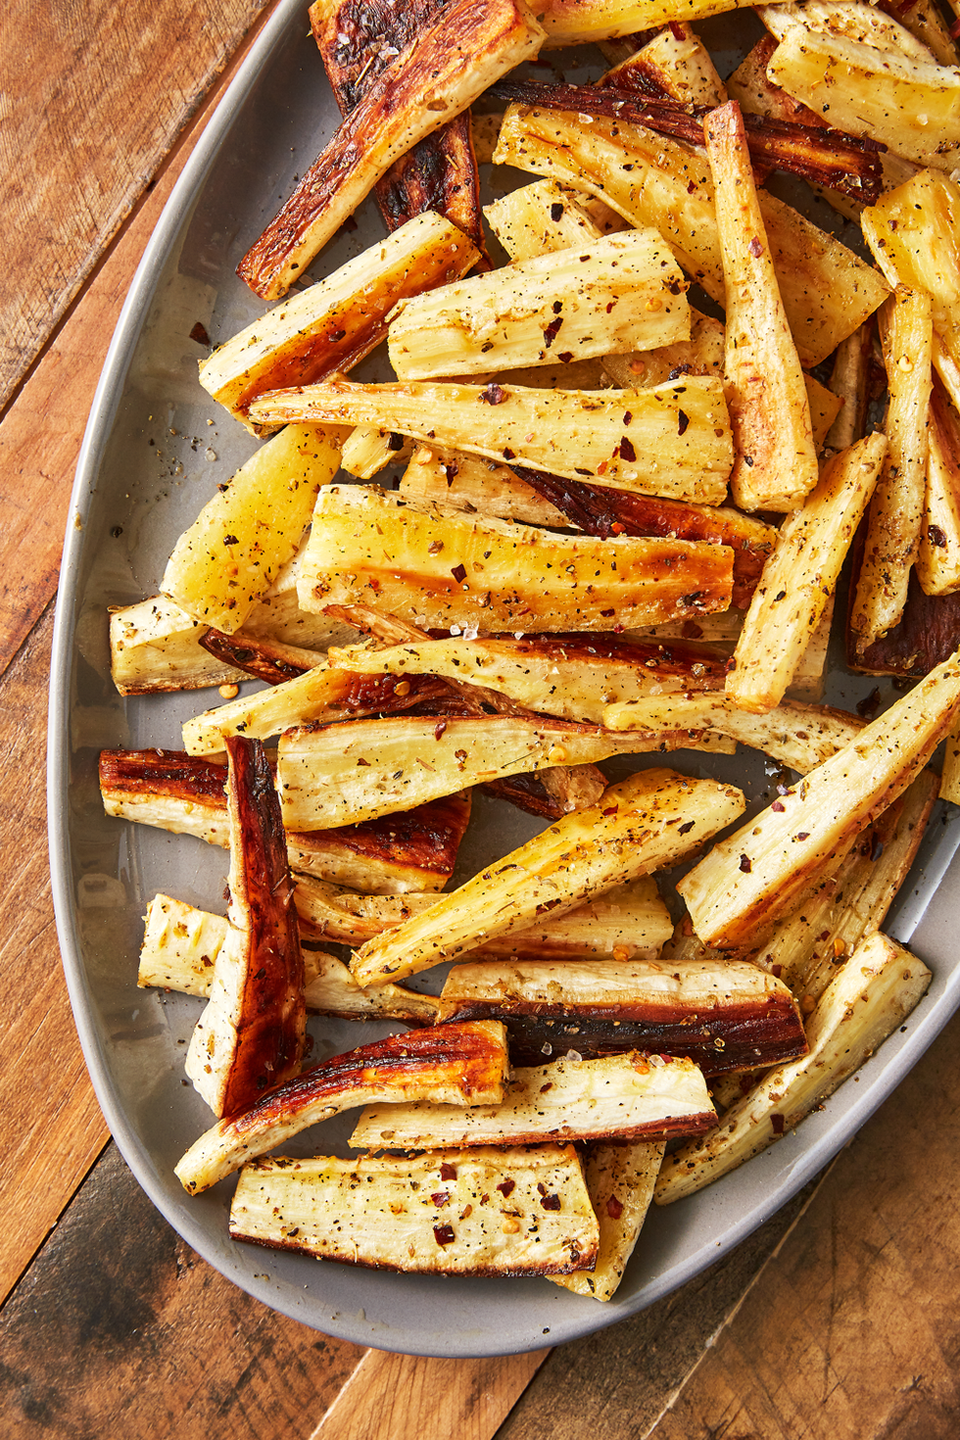 """<p>Parsnips don't get nearly the attention they deserve, but that ends now. Roasting them makes them slightly sweet and perfectly tender for a quick side dish you might love more than the main course.</p><p>Get the <a href=""""https://www.delish.com/uk/cooking/recipes/a29871209/roast-parsnips-recipe/"""" rel=""""nofollow noopener"""" target=""""_blank"""" data-ylk=""""slk:Roasted Parsnips"""" class=""""link rapid-noclick-resp"""">Roasted Parsnips</a> recipe.</p>"""